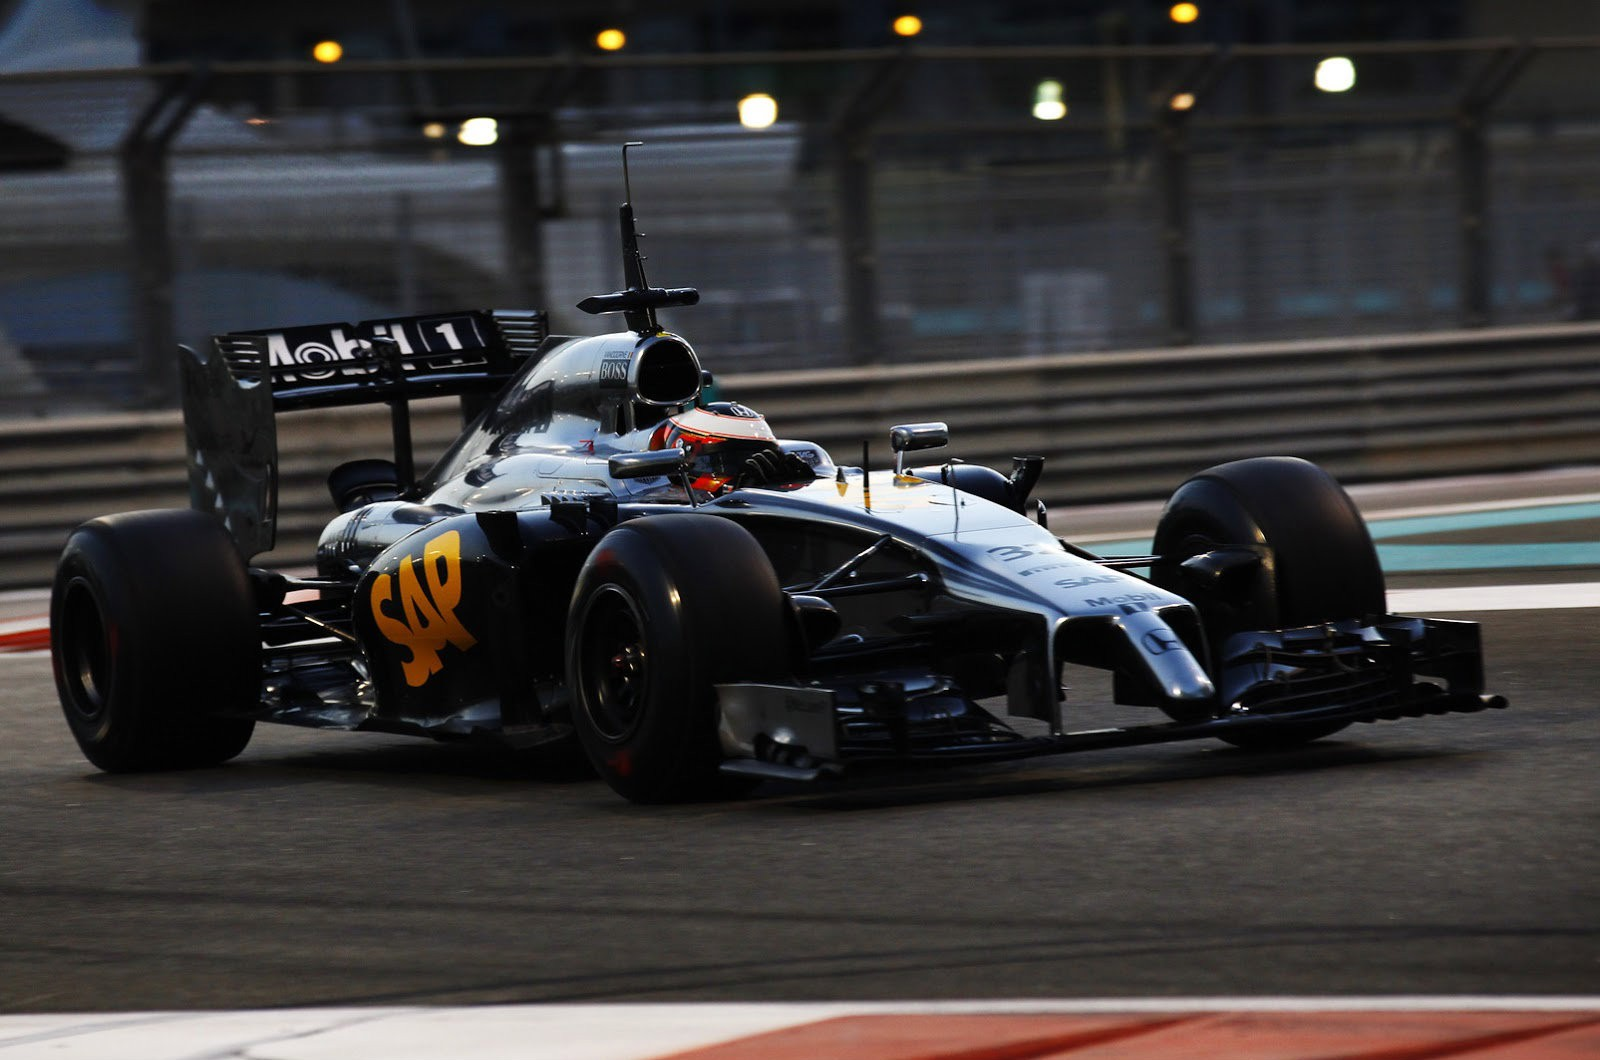 Mclaren Honda Mp4 29h 1x1 Completes Only 3 Laps In 8 Hours